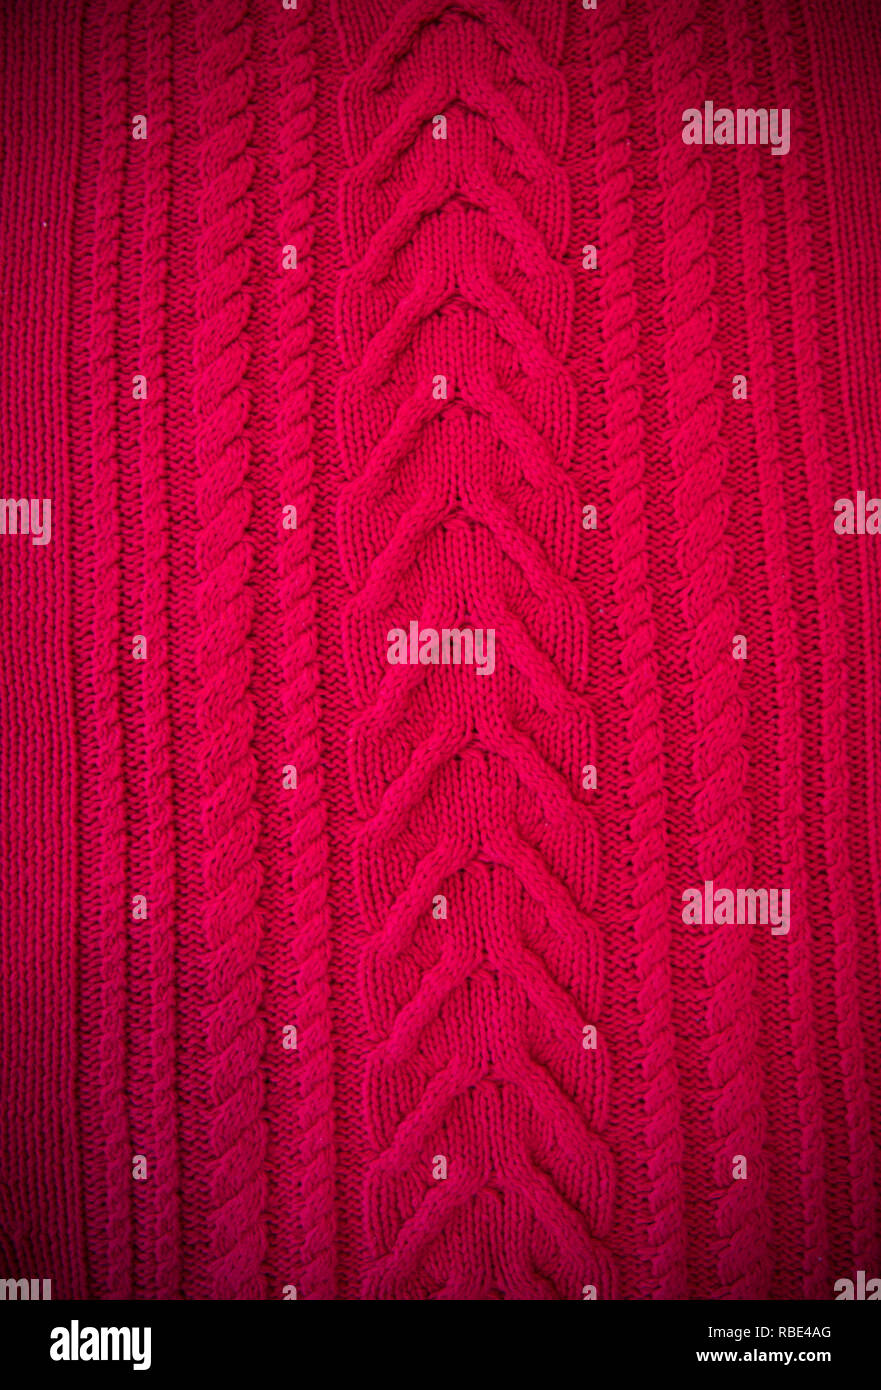 bb1fd1a9f51 Red Knitted pattern wool sweater texture close up. Handmade red knitting  wool texture background